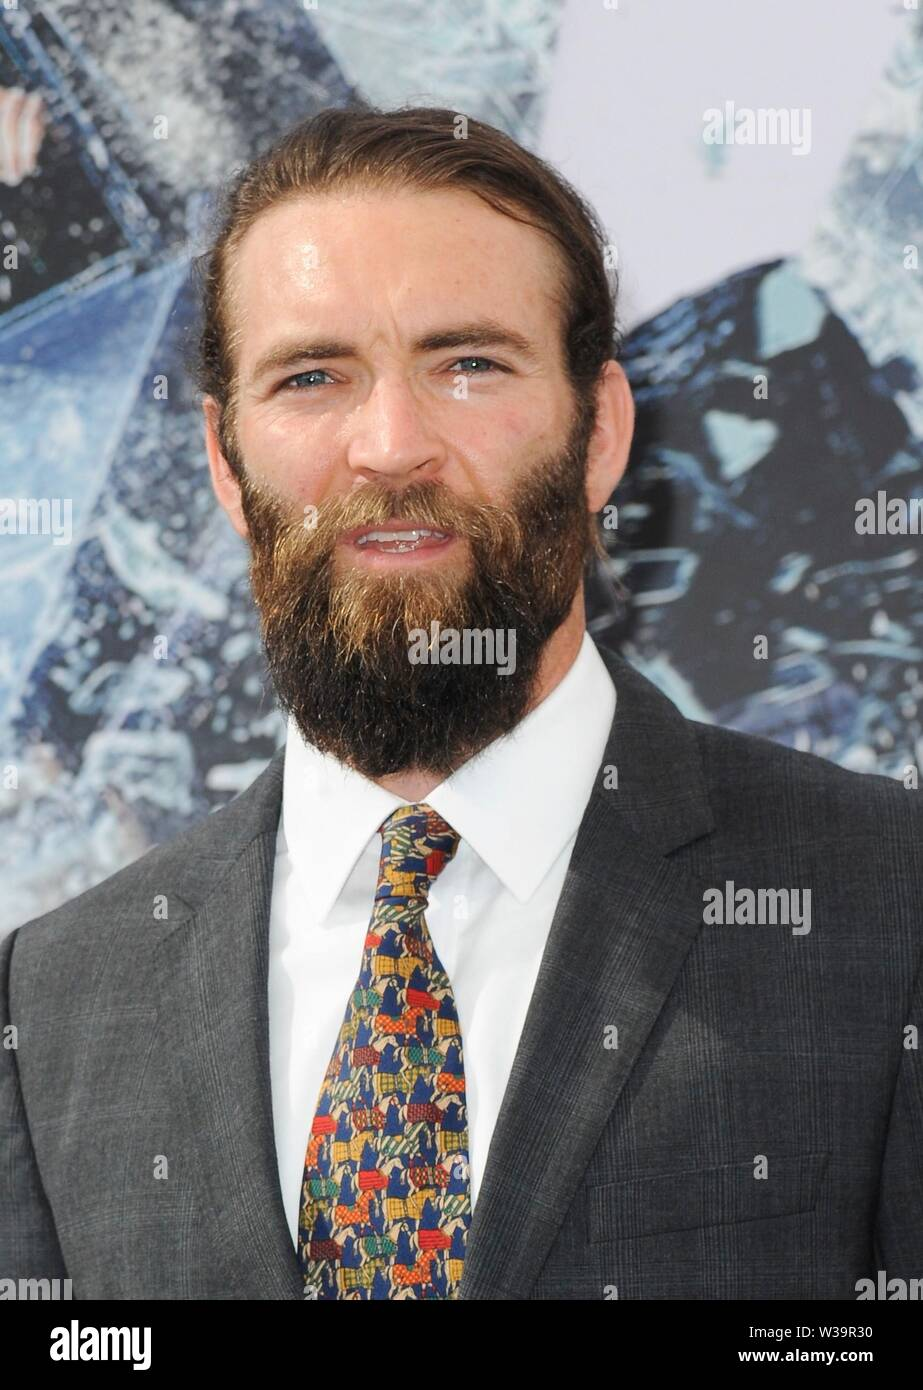 Los Angeles, CA, USA. 13th July, 2019. Sam Hargrave at arrivals for FAST & FURIOUS PRESENTS: HOBBS & SHAW Premiere, The Dolby Theatre at Hollywood and Highland Center, Los Angeles, CA July 13, 2019. Credit: Elizabeth Goodenough/Everett Collection/Alamy Live News Stock Photo